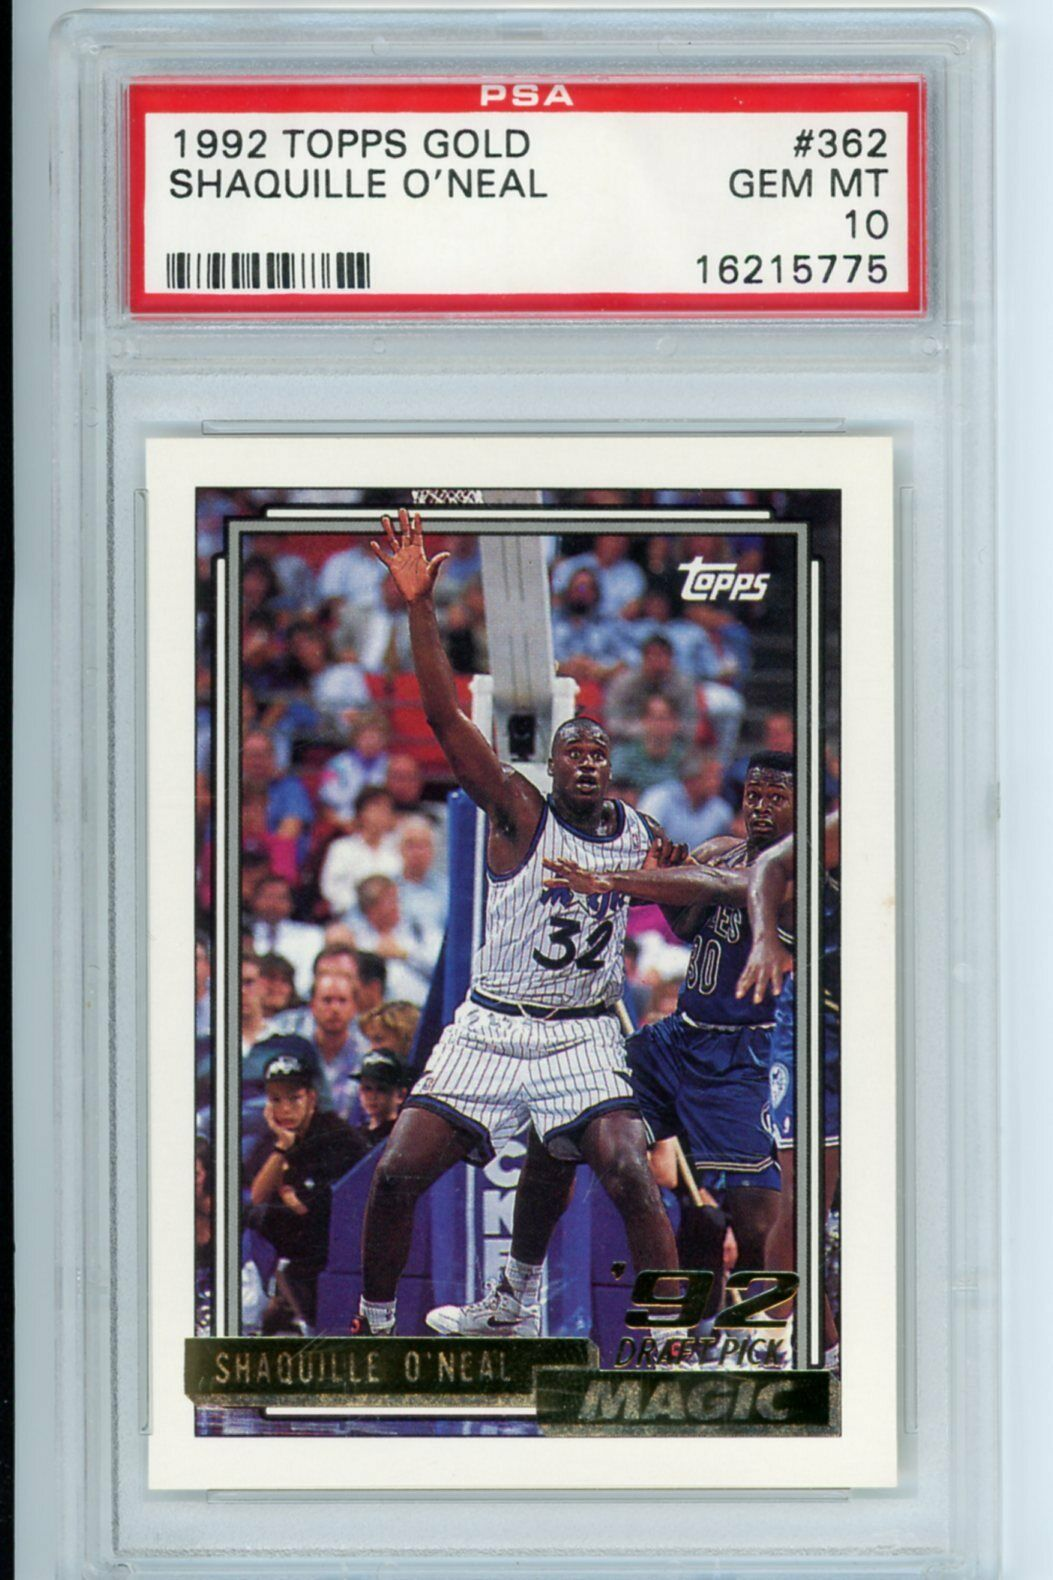 Image 1 - 1992-Topps-Gold-Shaquille-O-039-Neal-ROOKIE-RC-362-PSA-10-GEM-MINT